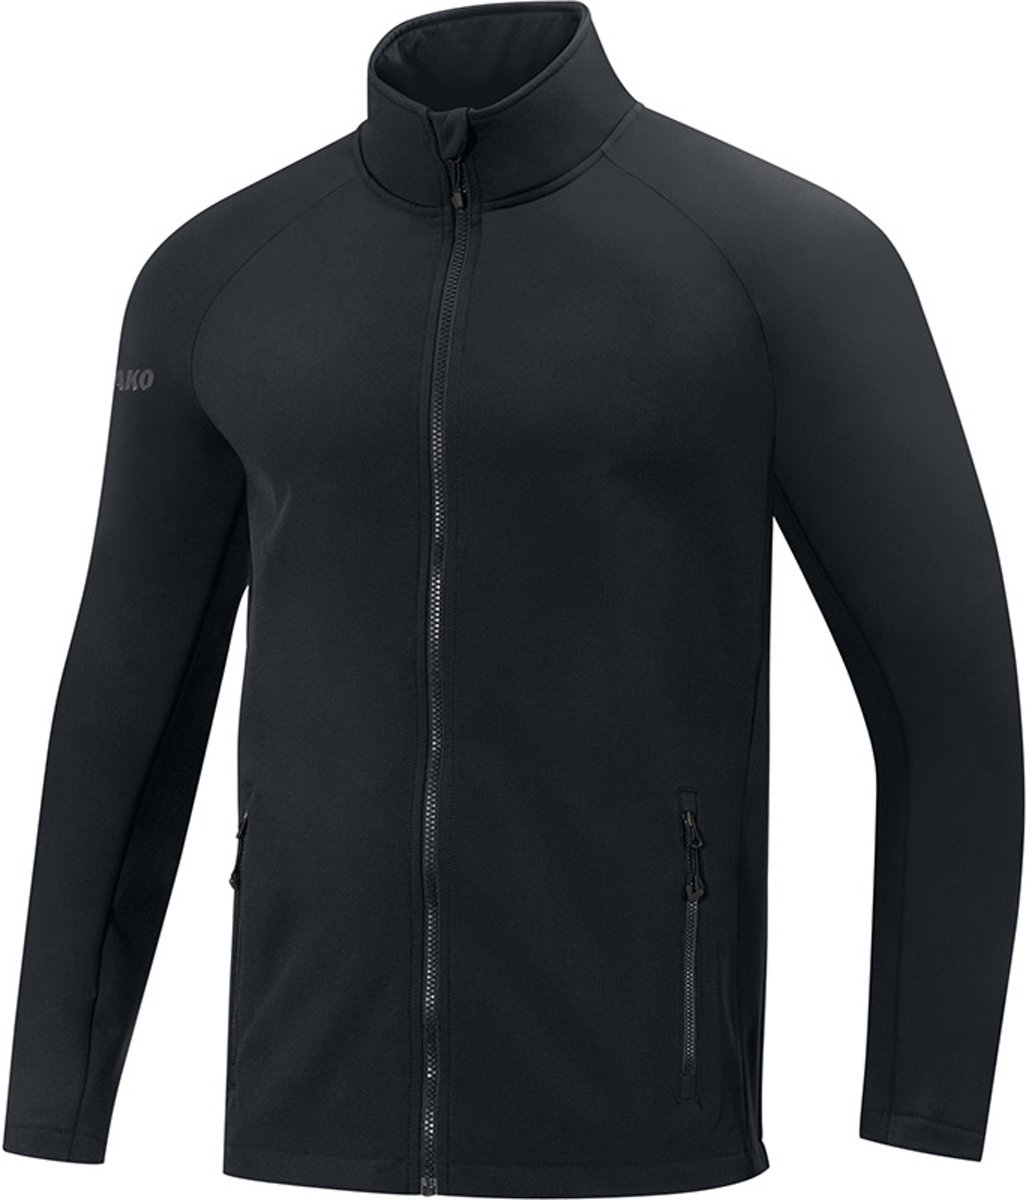 Jako Team Dames Softshell Jas - Softshelljassen  - zwart - 38